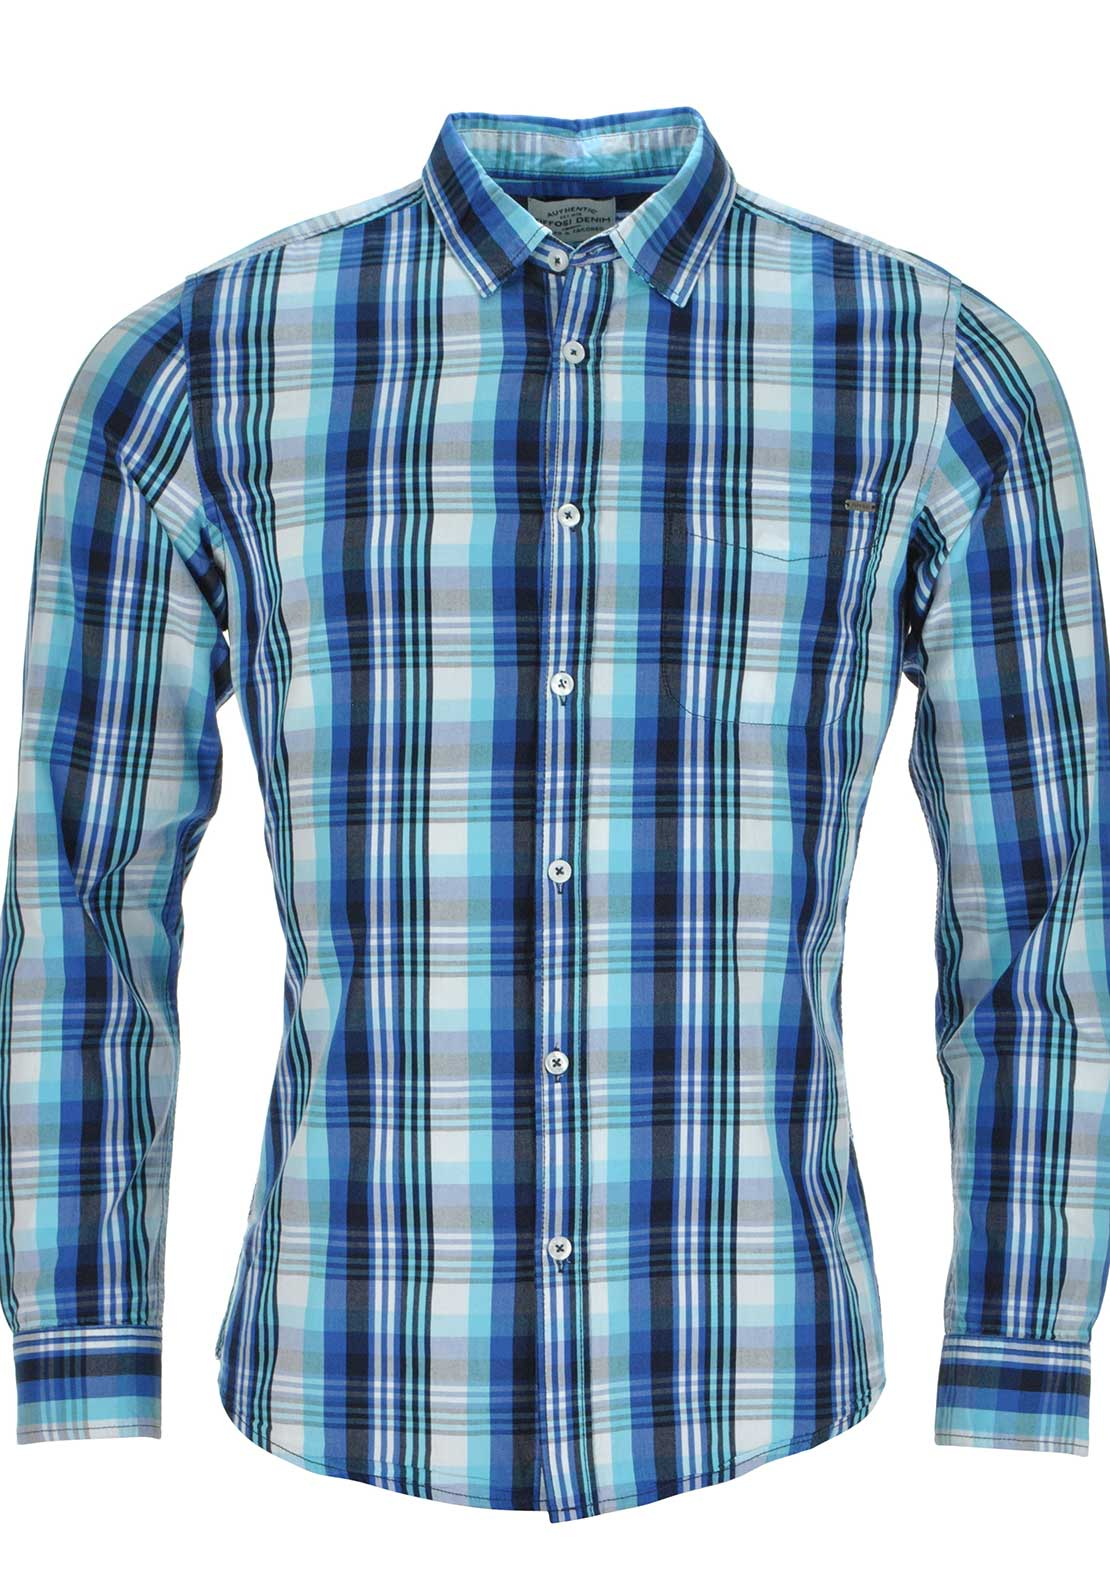 Tiffosi Mens Long Sleeved Checked Shirt, Blue